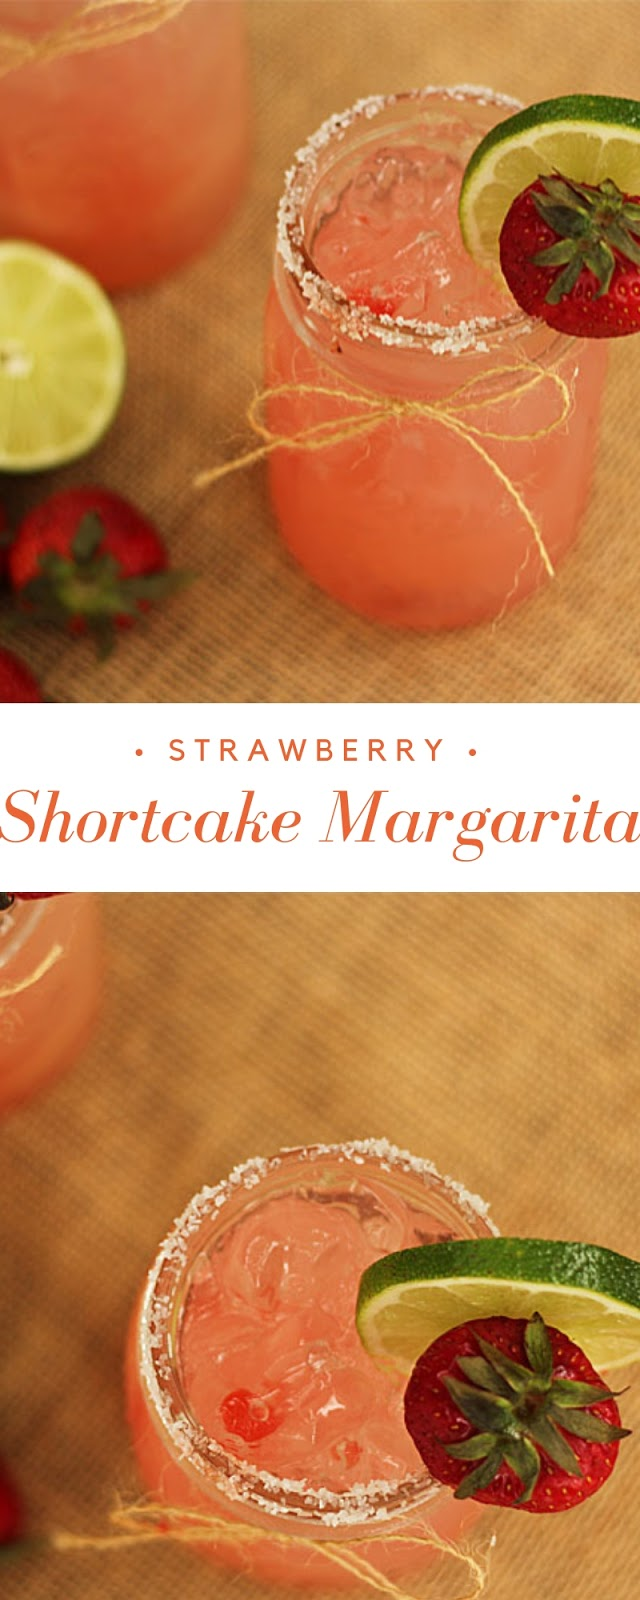 Strawberry Shortcake Margarita